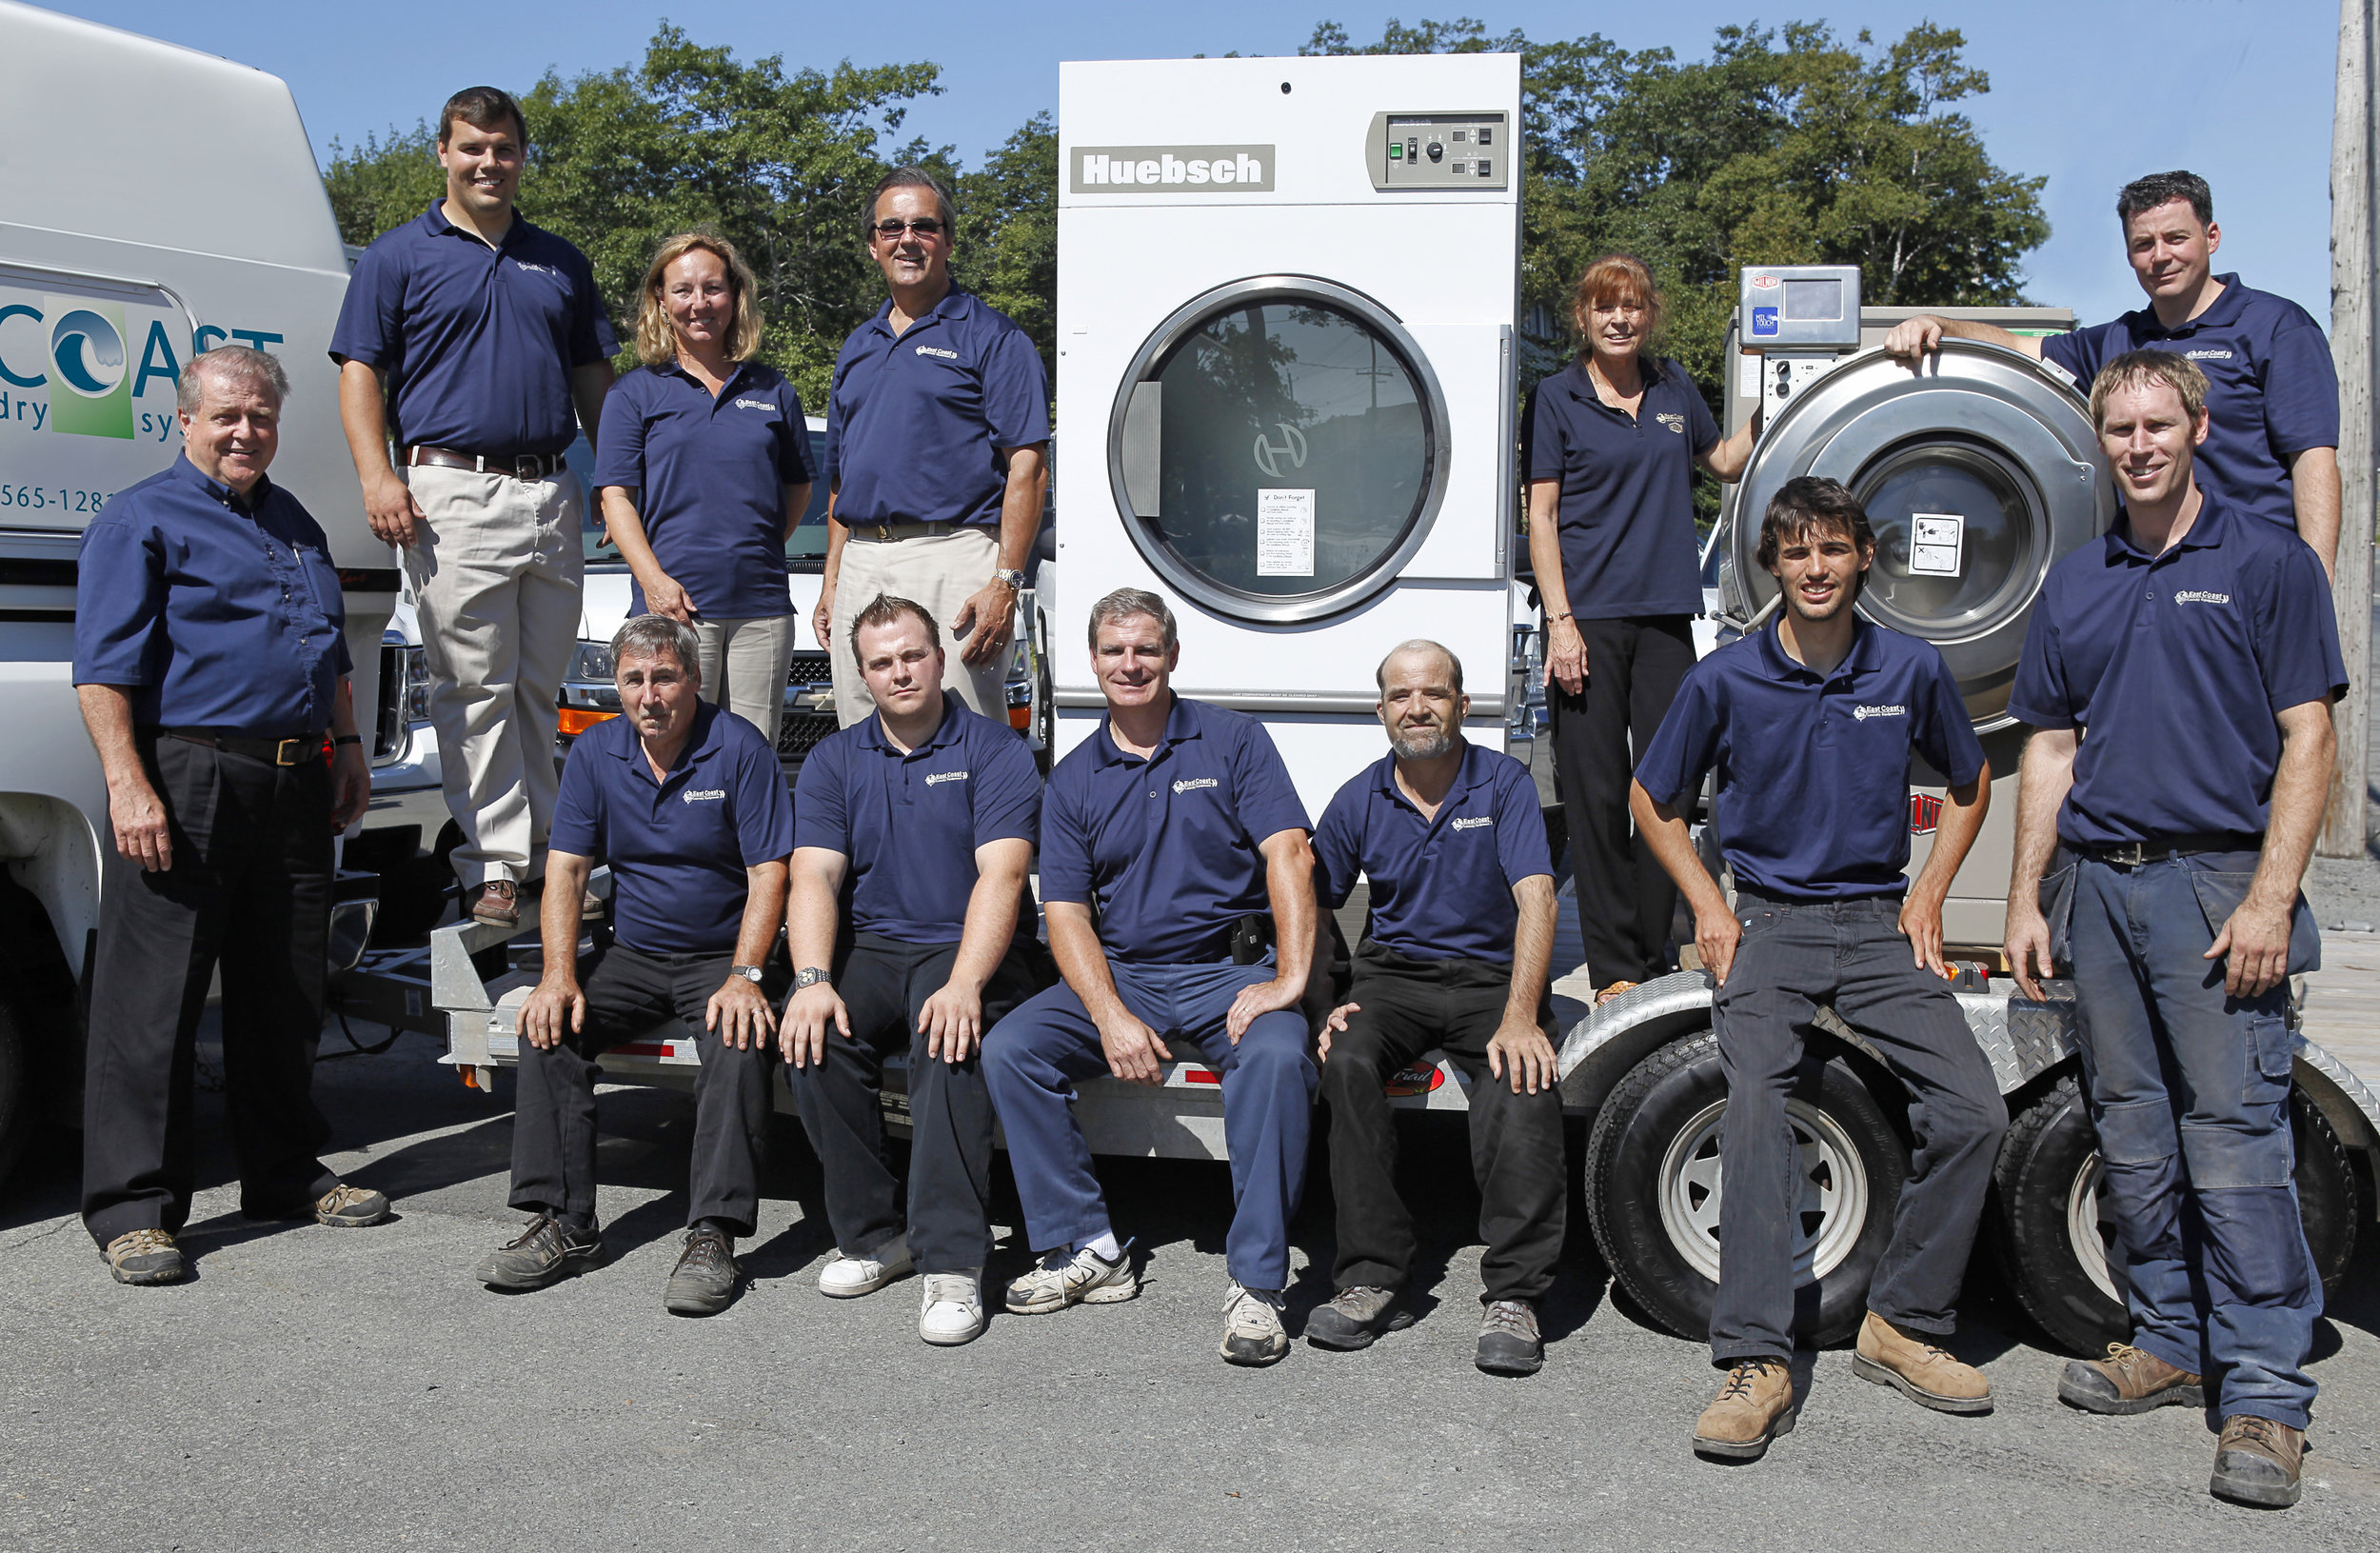 Photographed with the East Coast Laundry Systems staff are, at back row from left, Greg Blunden, his parents, Marge and Peter Blunden, and brother James Blunden, second from right in front row. Kory Orchard, operations manager for over 10 years, is at far right in back row.